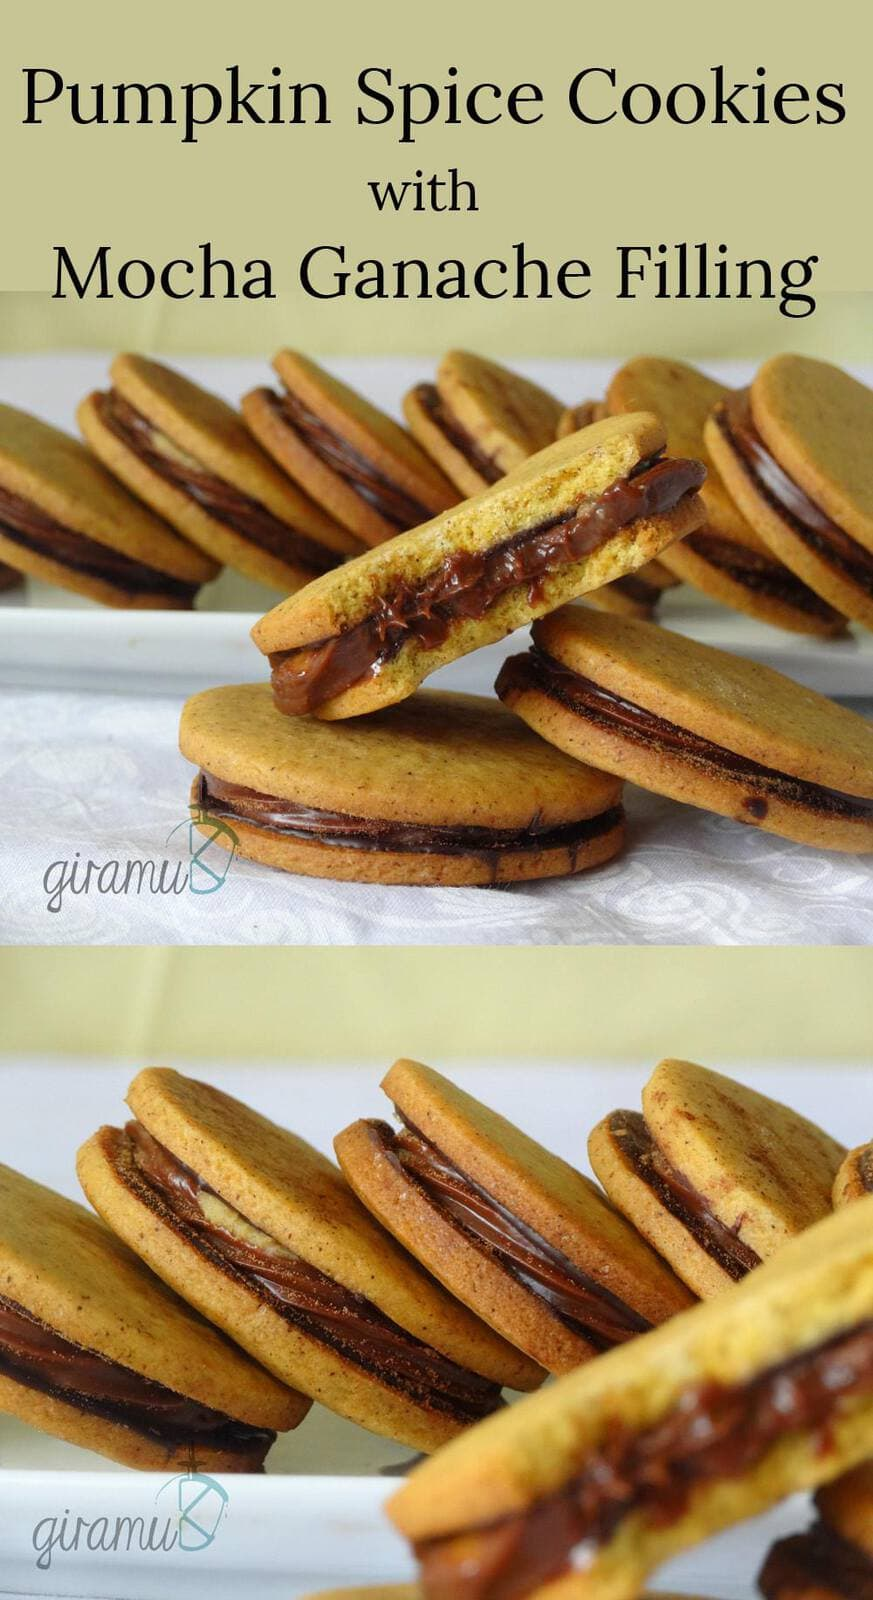 Pumpkin Spice Cookies with Mocha Ganache Filling